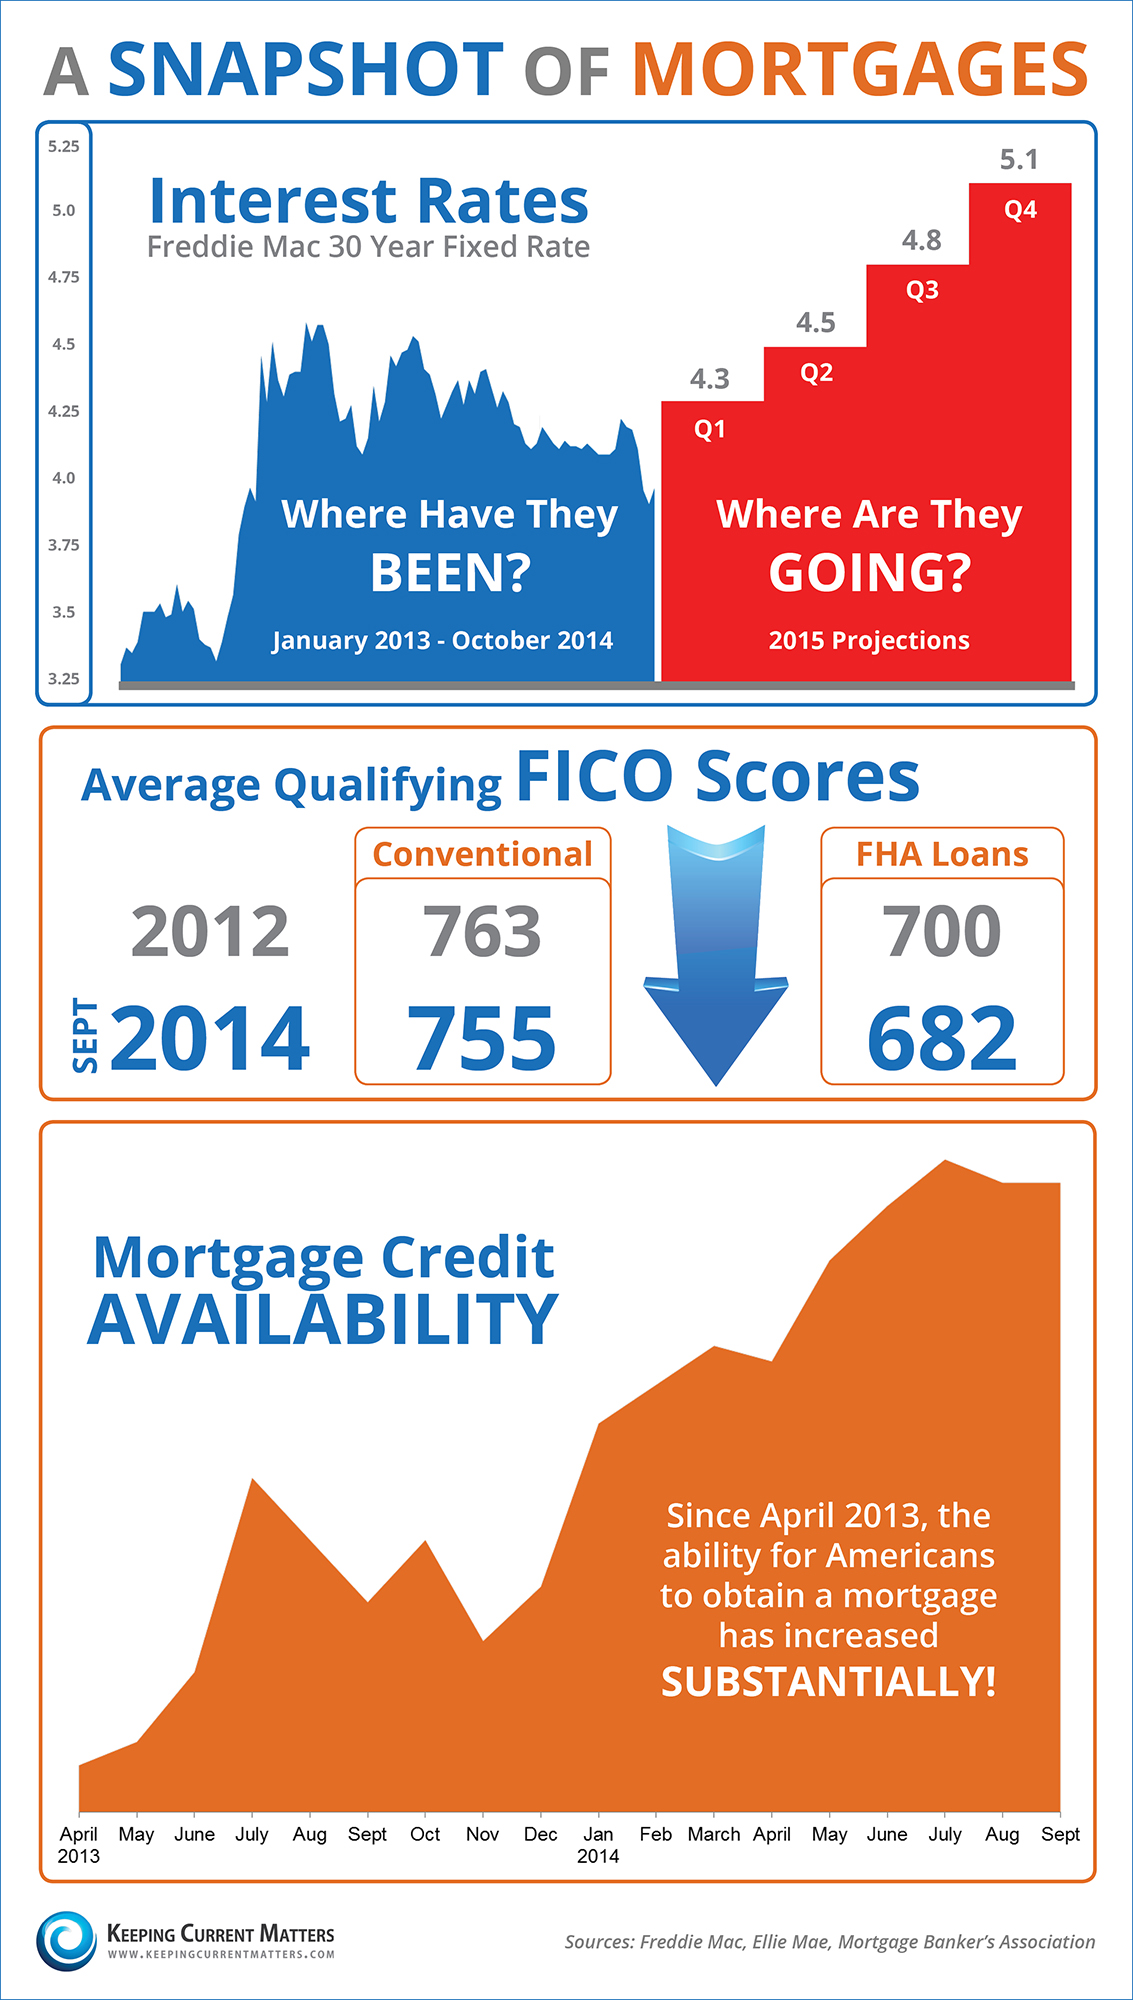 A snapshot infographic of mortgages